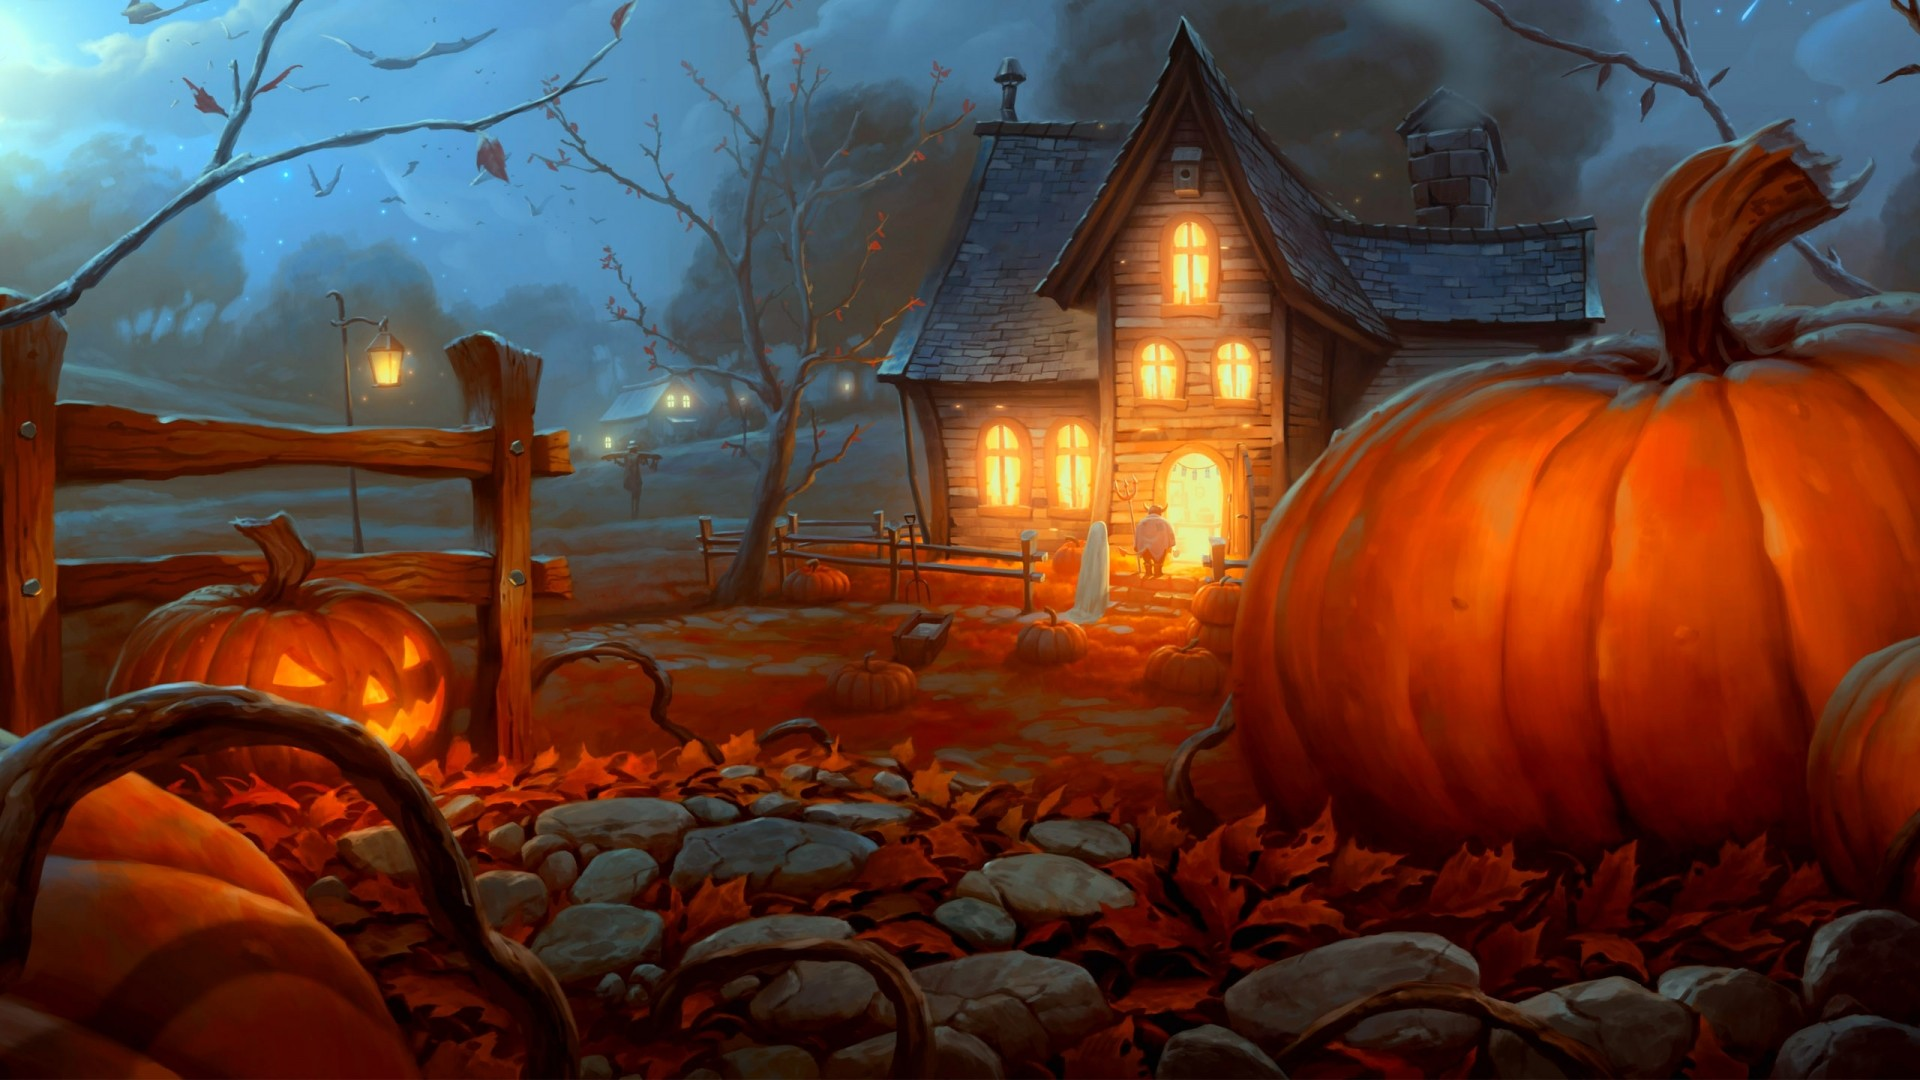 Great Wallpaper High Resolution Halloween - 69416-best-halloween-wallpapers-1920x1080-ipad-retina  Pic_639128.jpg